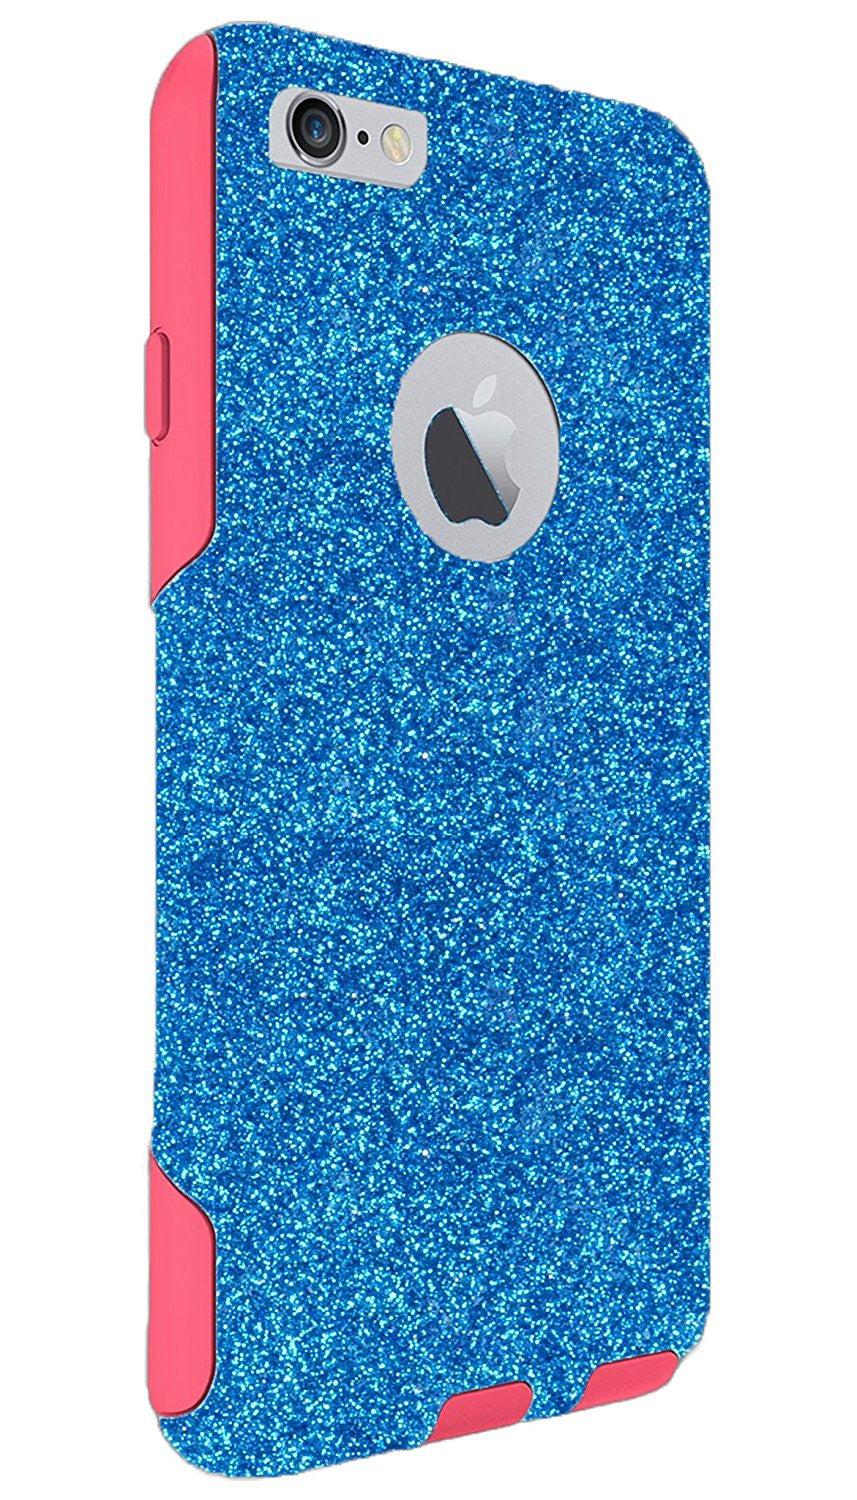 timeless design d0bdd 6d776 OtterBox iPhone 6s Plus Case - OtterBox Commuter Series Custom Glitter Case  for iPhone 6 Plus/6s Plus, Retail Packaging - Peacock/Pink (5.5 inch)